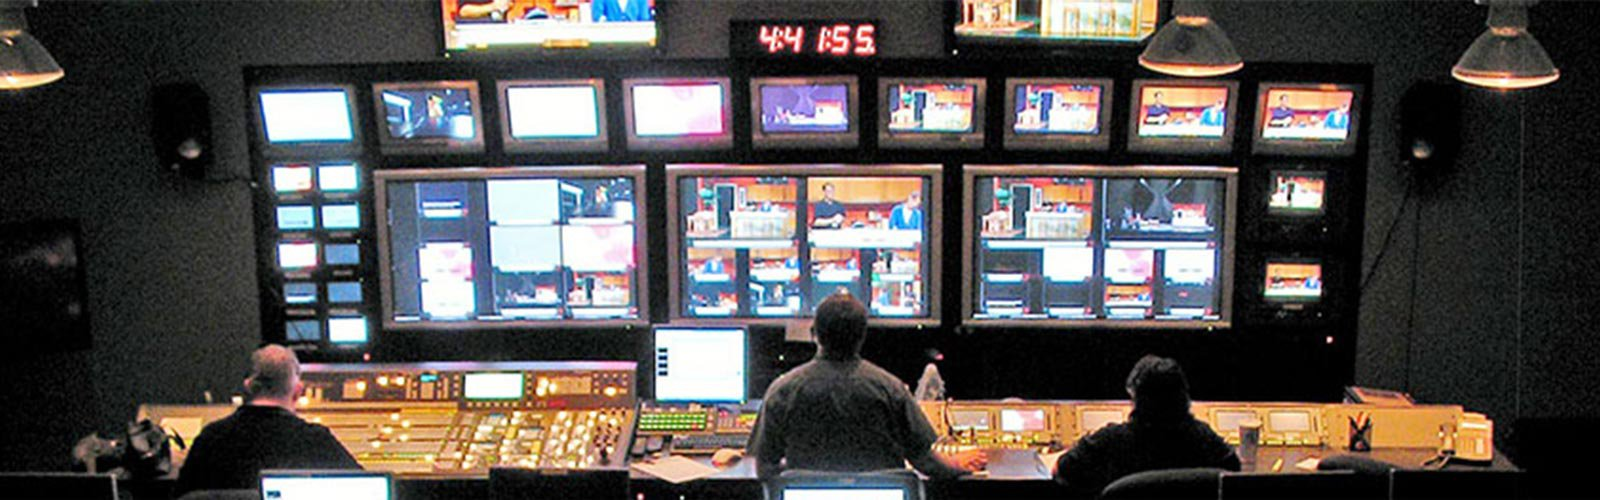 Broadcast control room with several video displays and audio-video control terminals. (background)